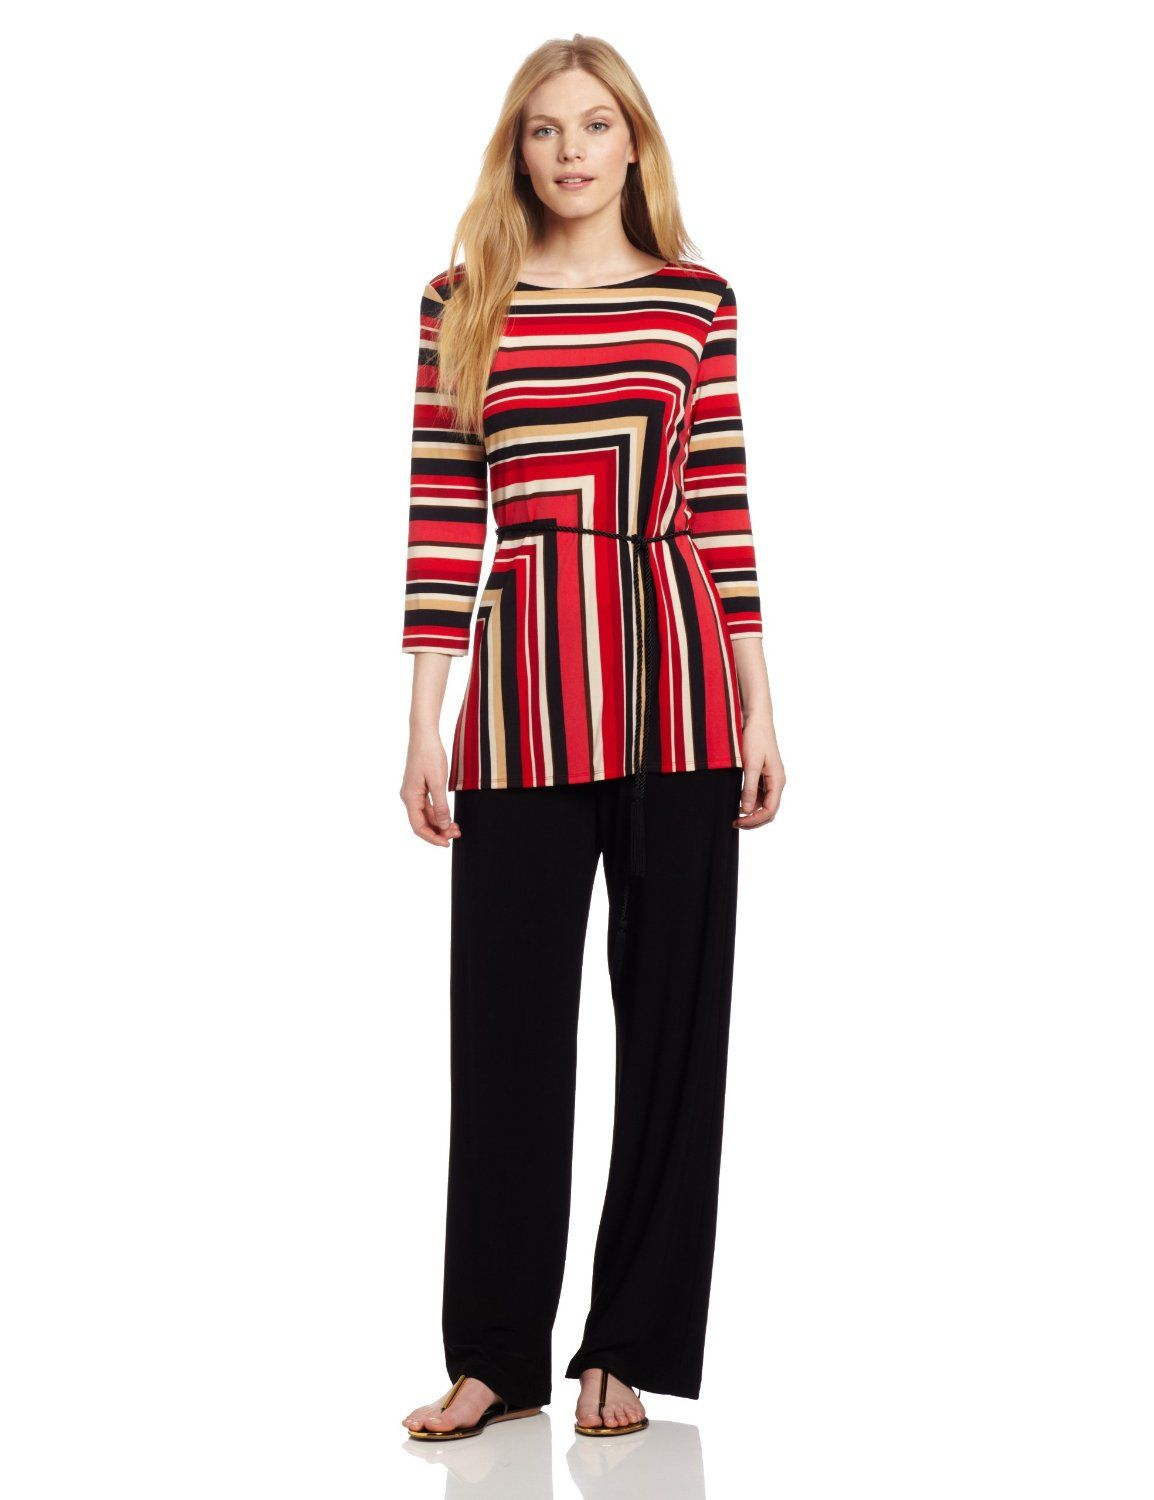 Danny & Nicole Women's Jersey Tunic Top And Pant Set, Red/Black, 8 Missy